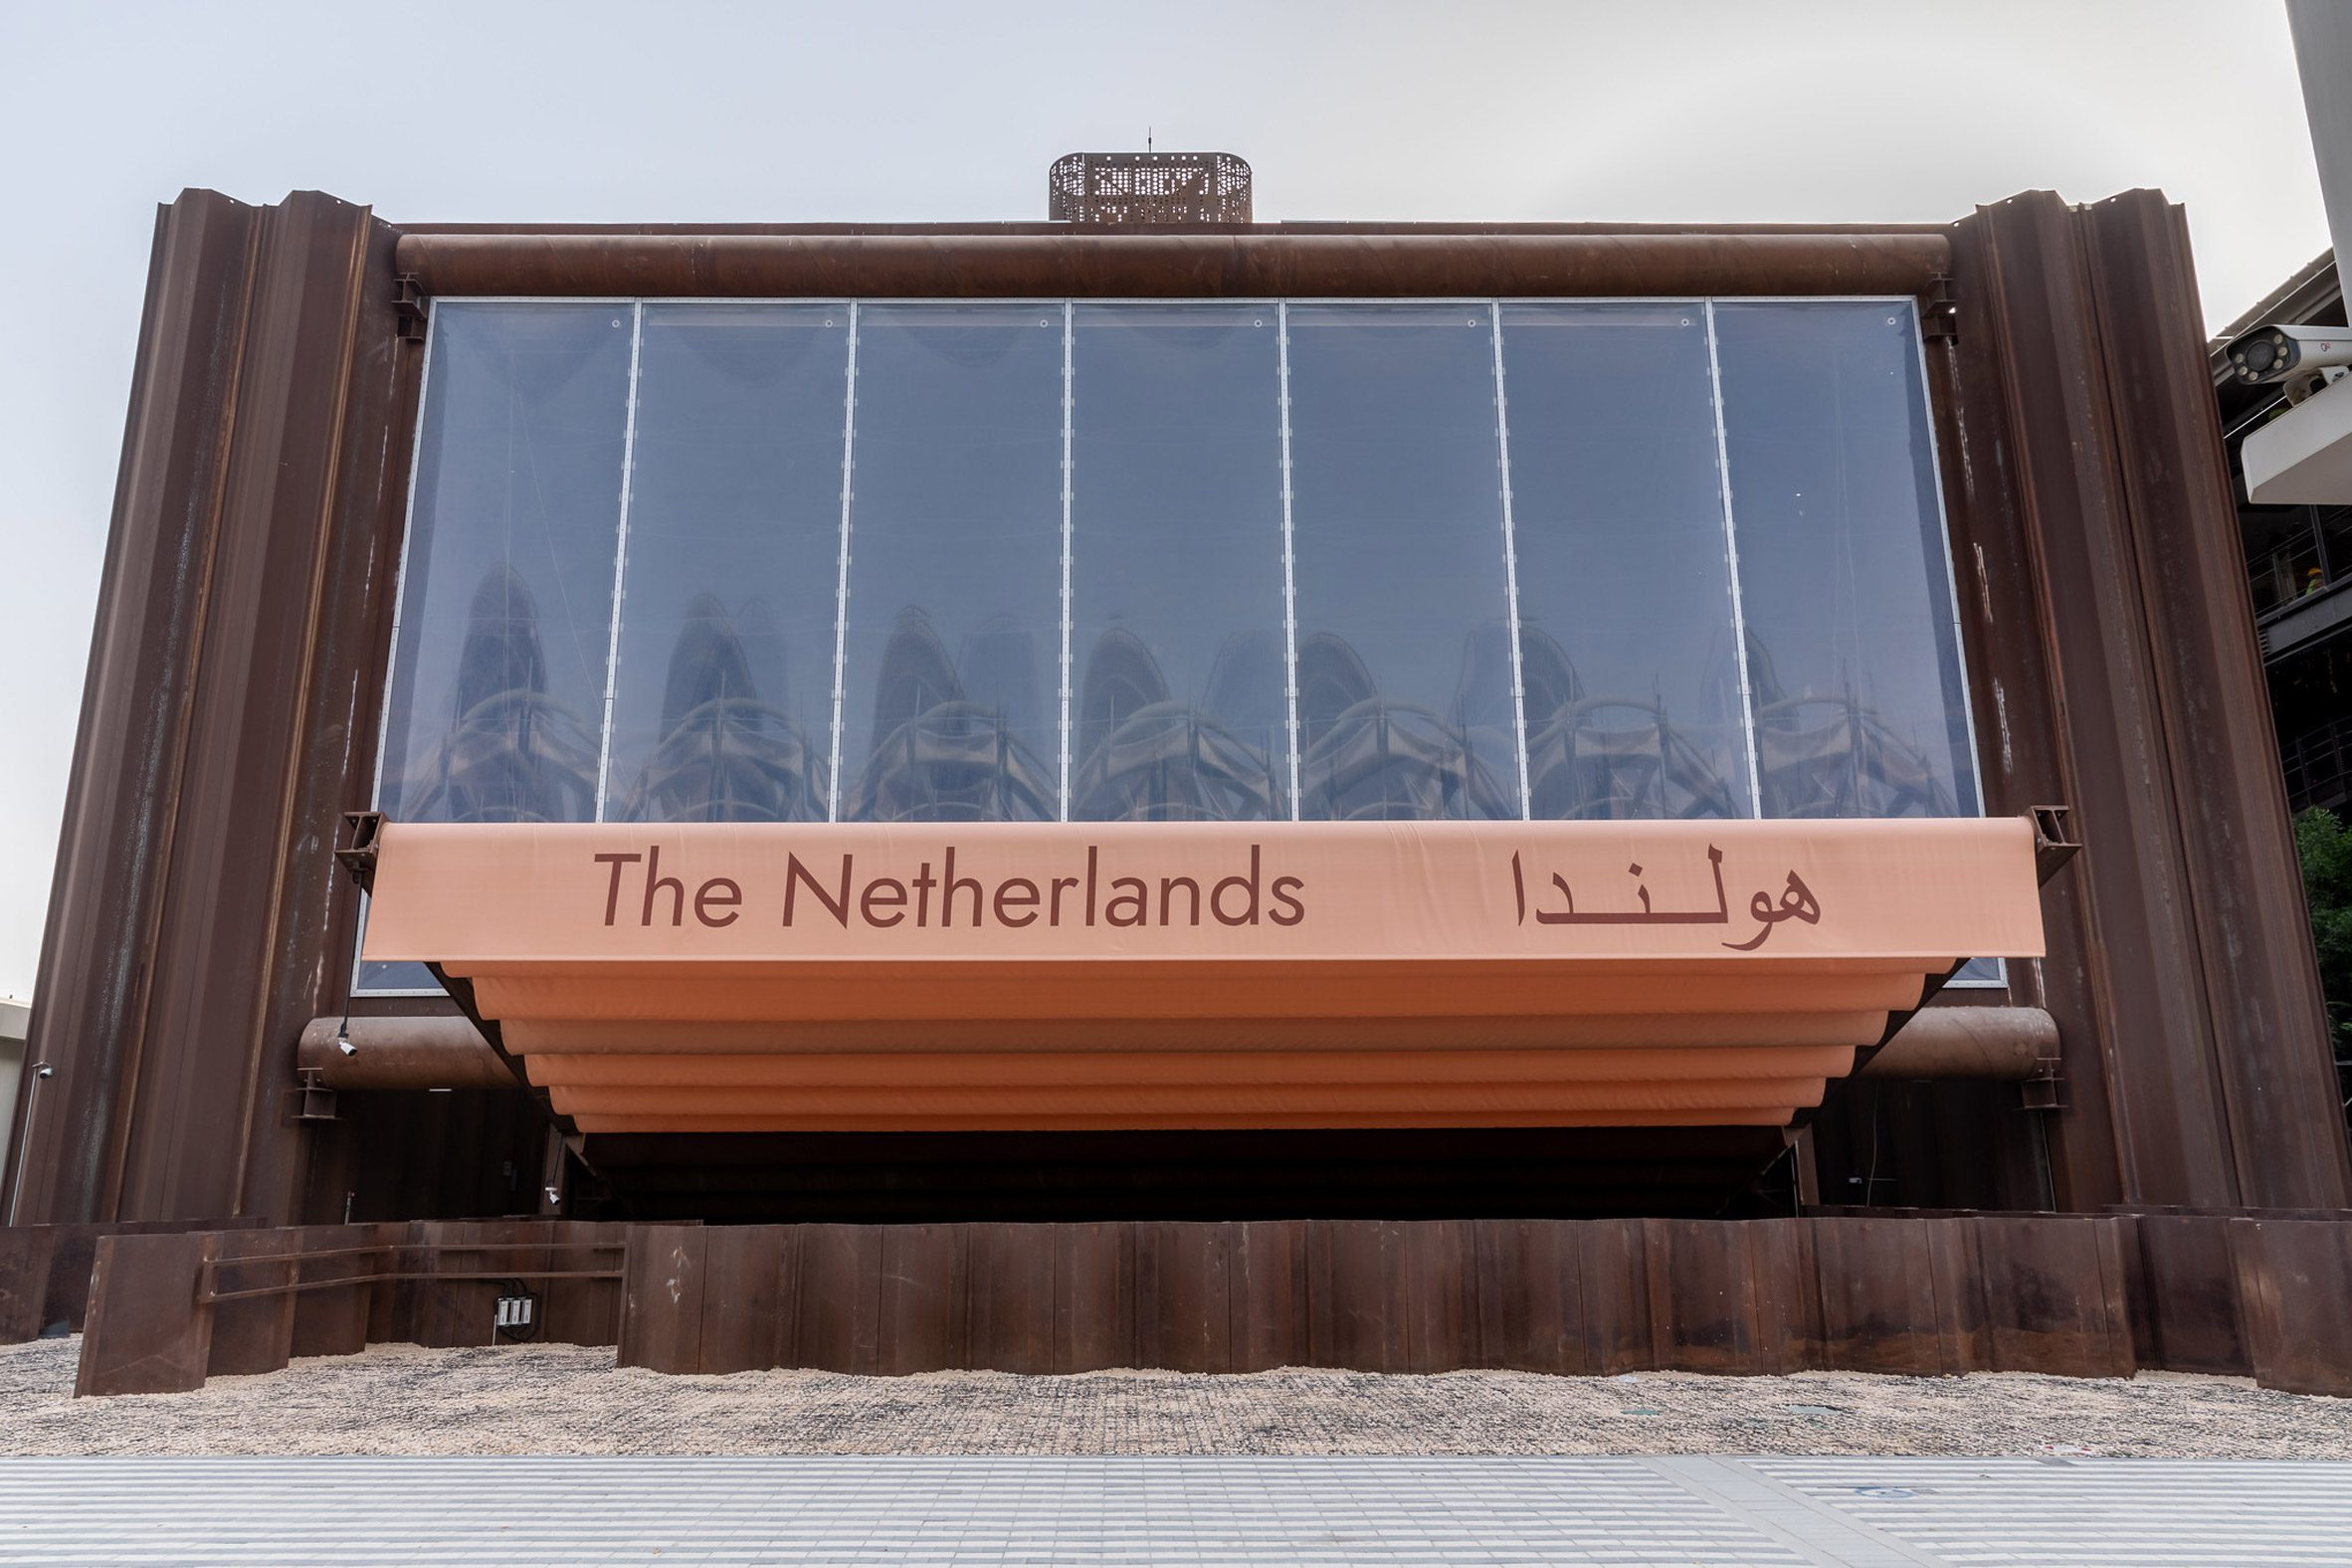 Exterior of the Netherlands' pavilion at Expo 2020 Dubai